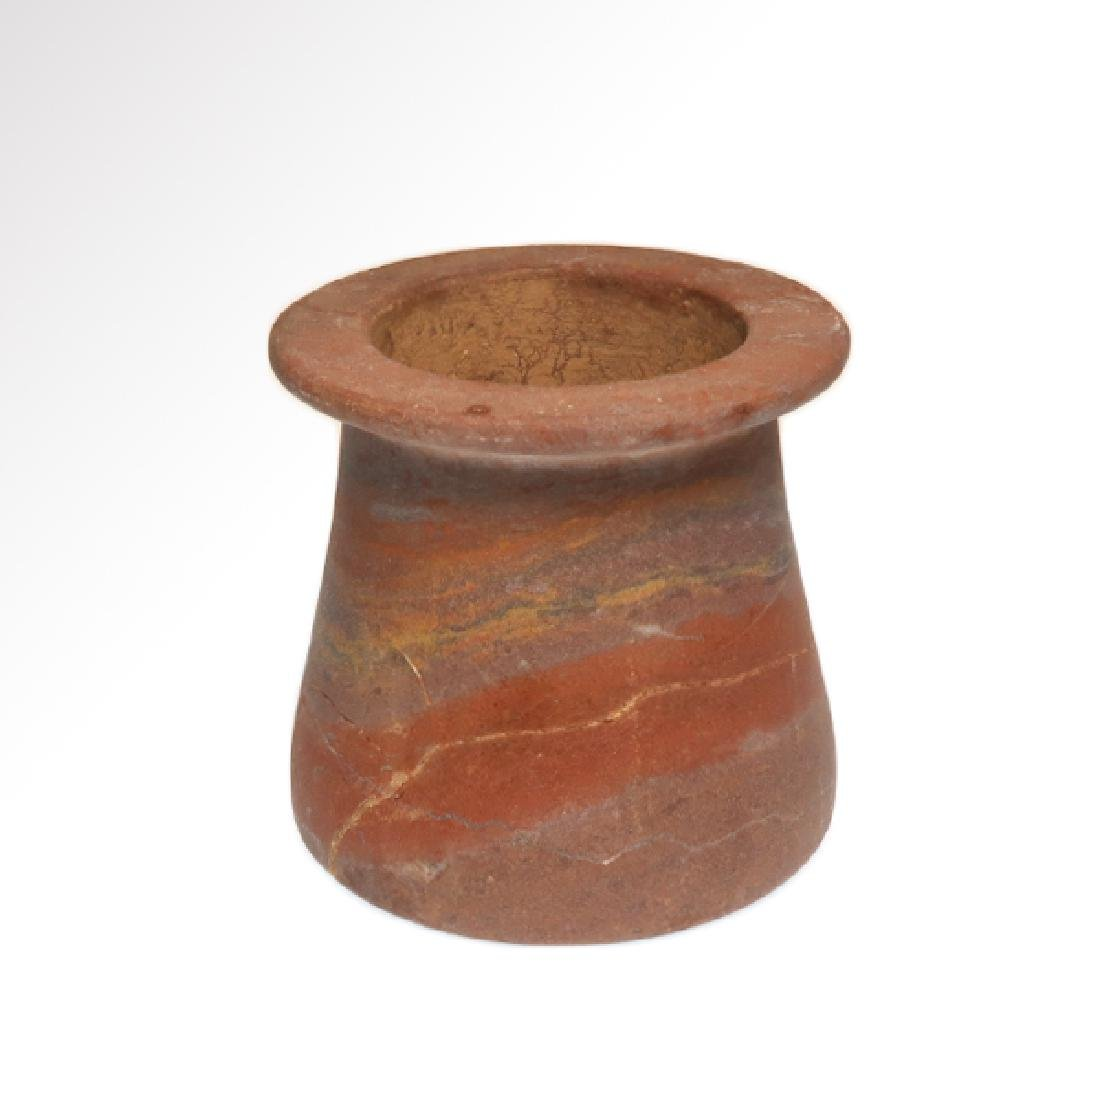 Egyptian Red Marble Vessel Jar, Early Dynastic, c. 2700 - 2